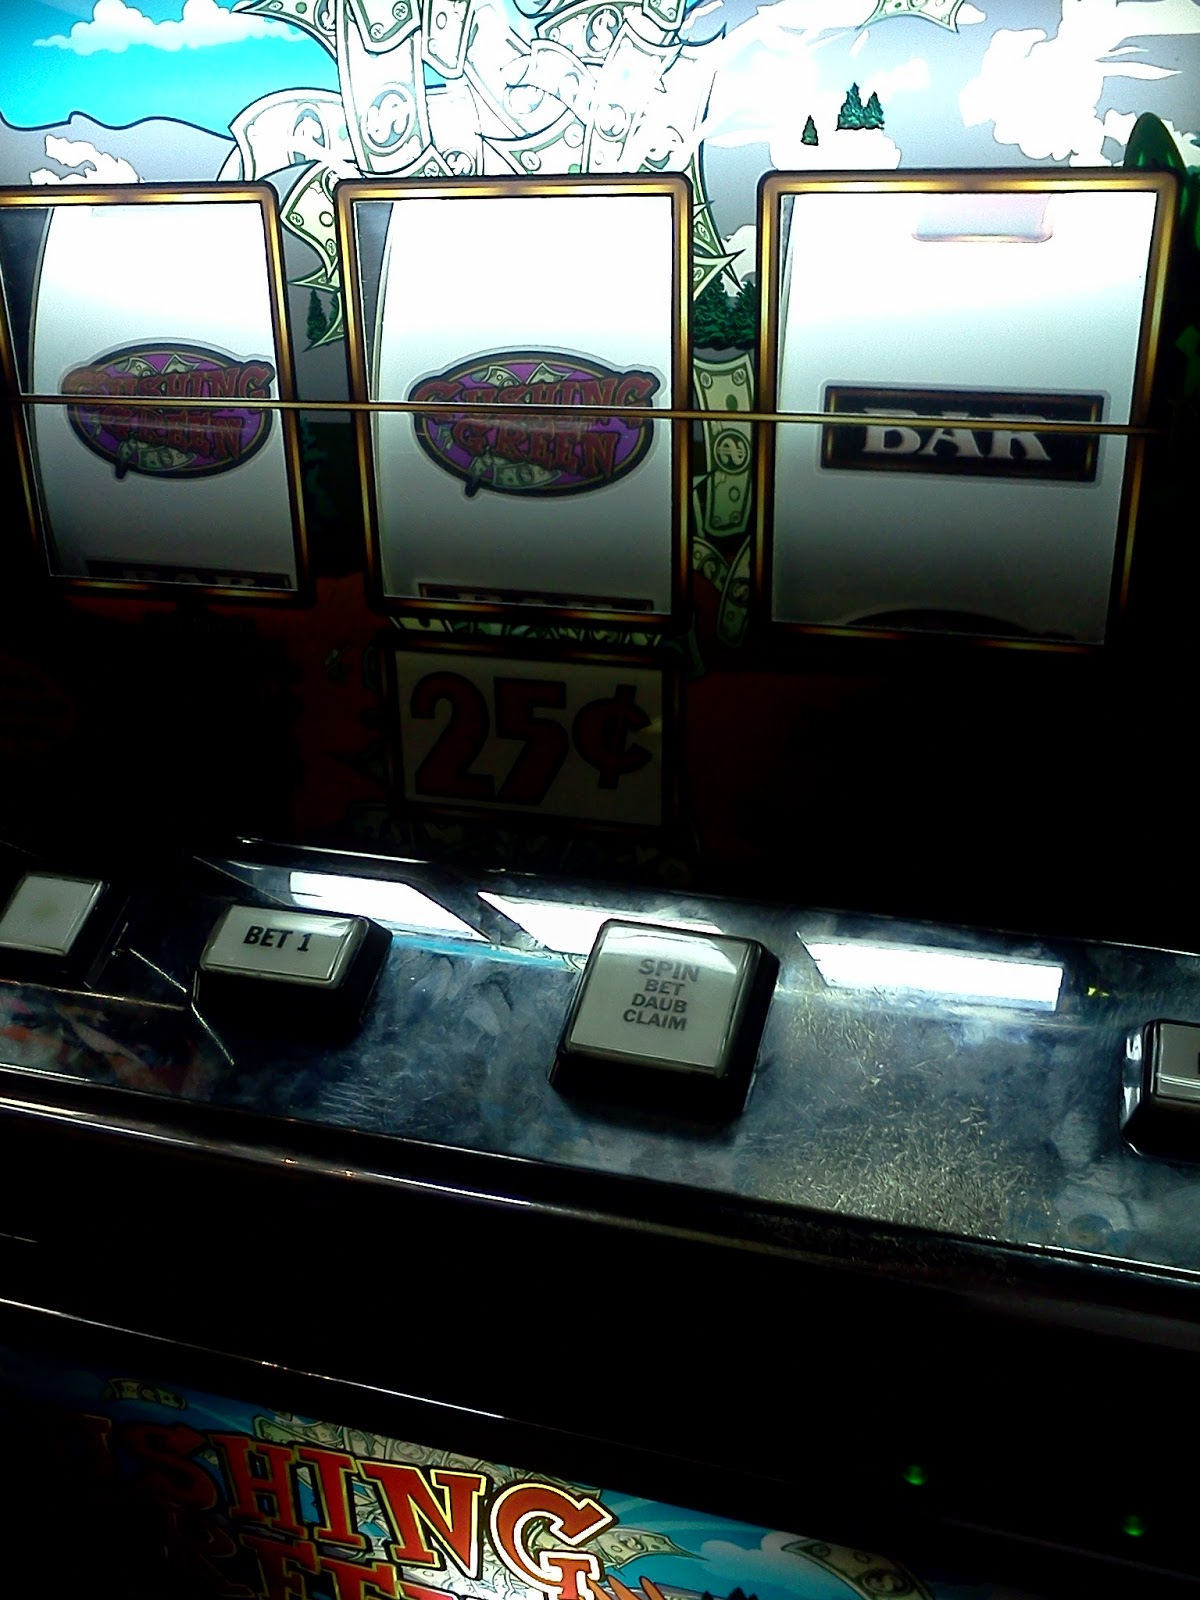 polar high roller slots in vegas